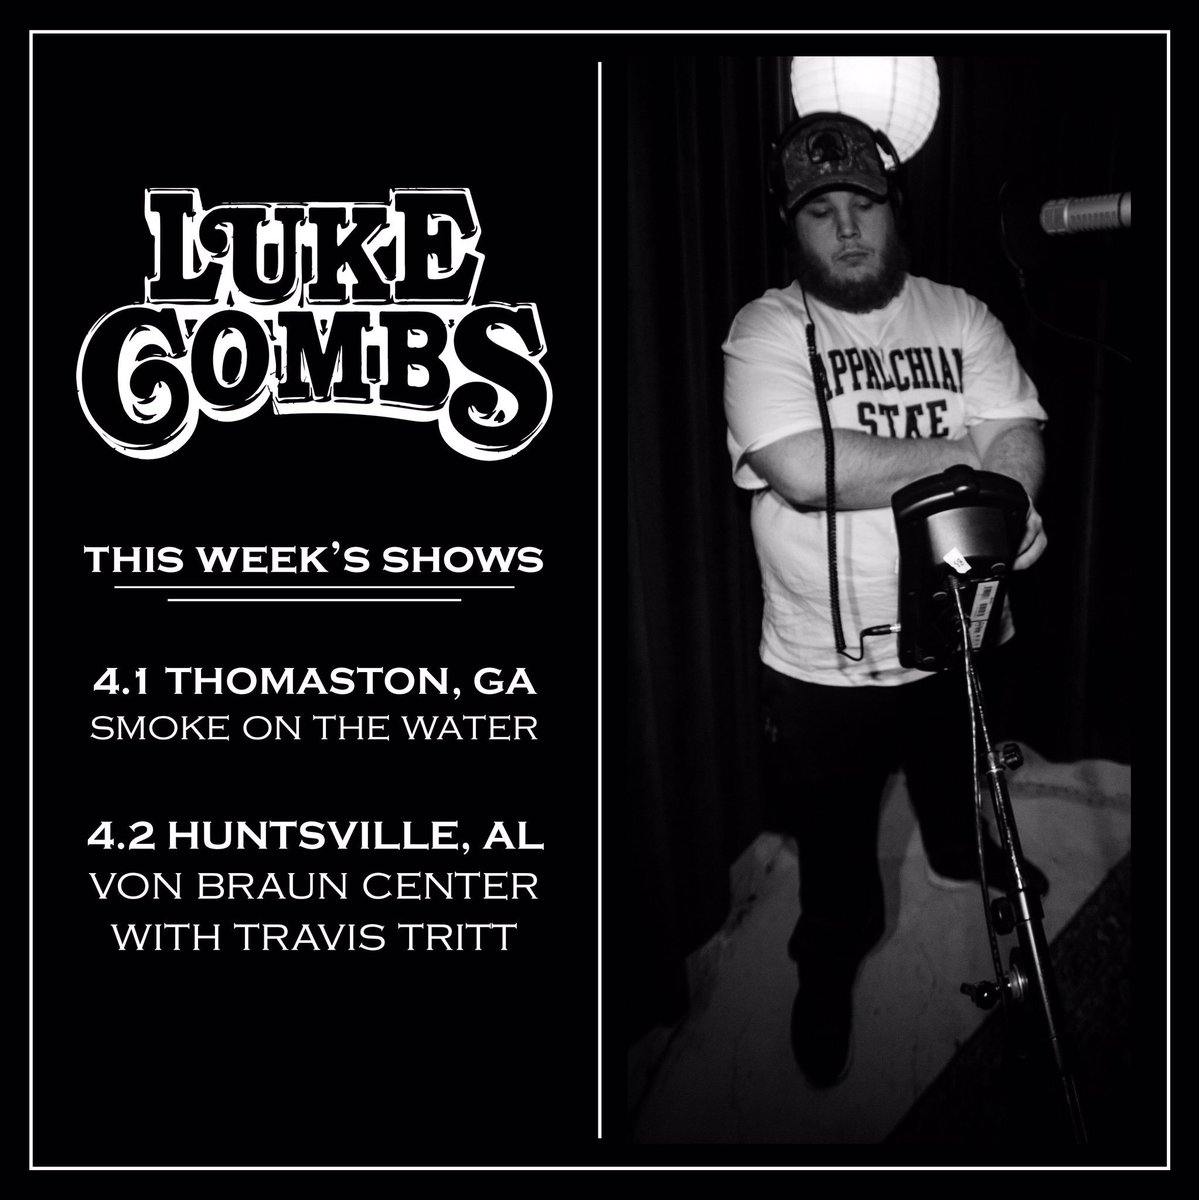 Luke combs on twitter rt for a chance to win 2 meet greet luke combs on twitter rt for a chance to win 2 meet greet passes one winner for each show but must have show ticket for eligibility m4hsunfo